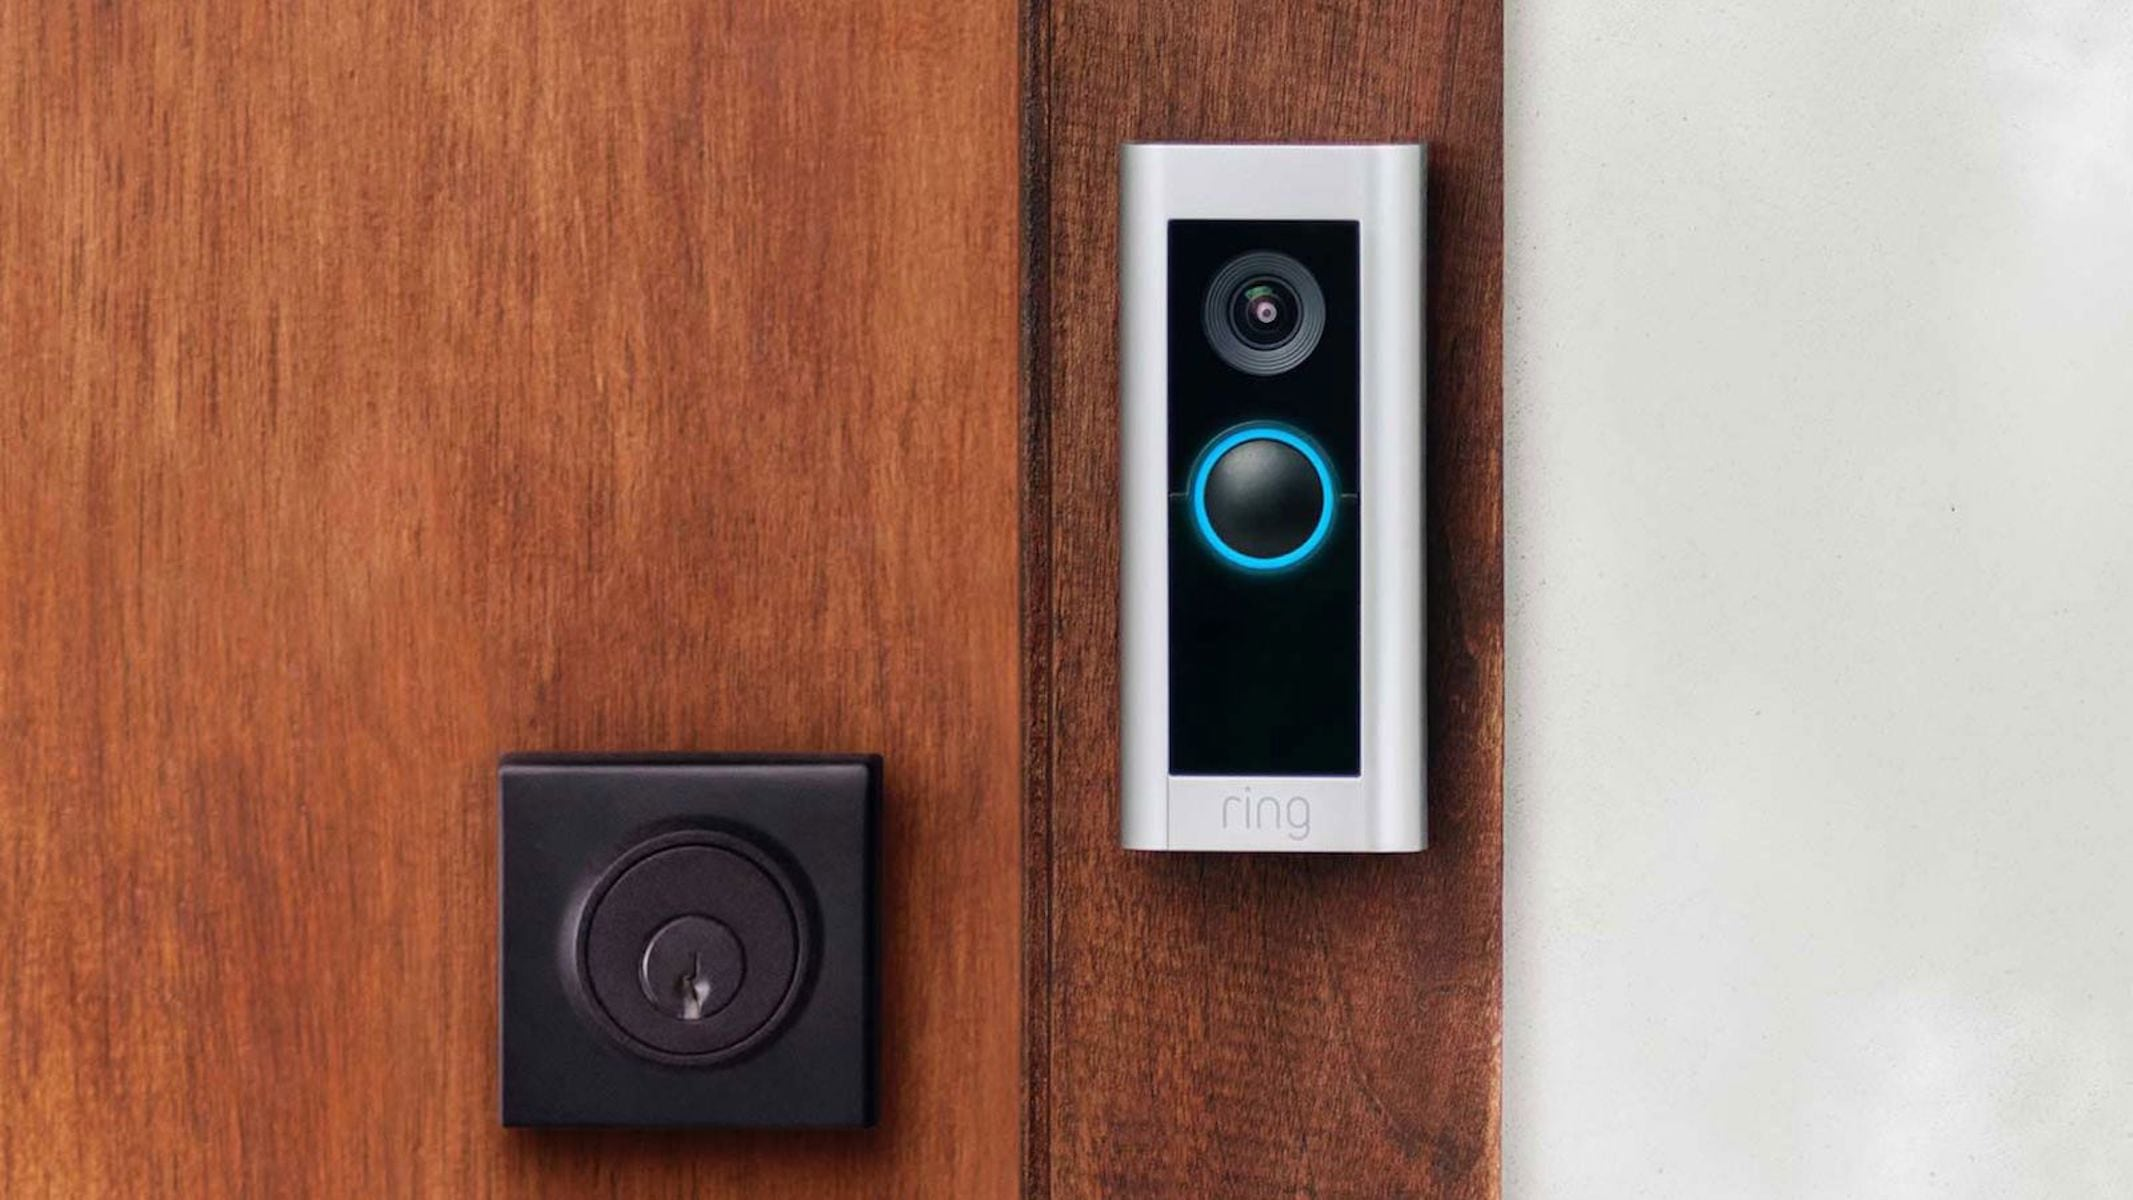 Ring's new Video Doorbell Pro 2 comes with enhanced motion detection